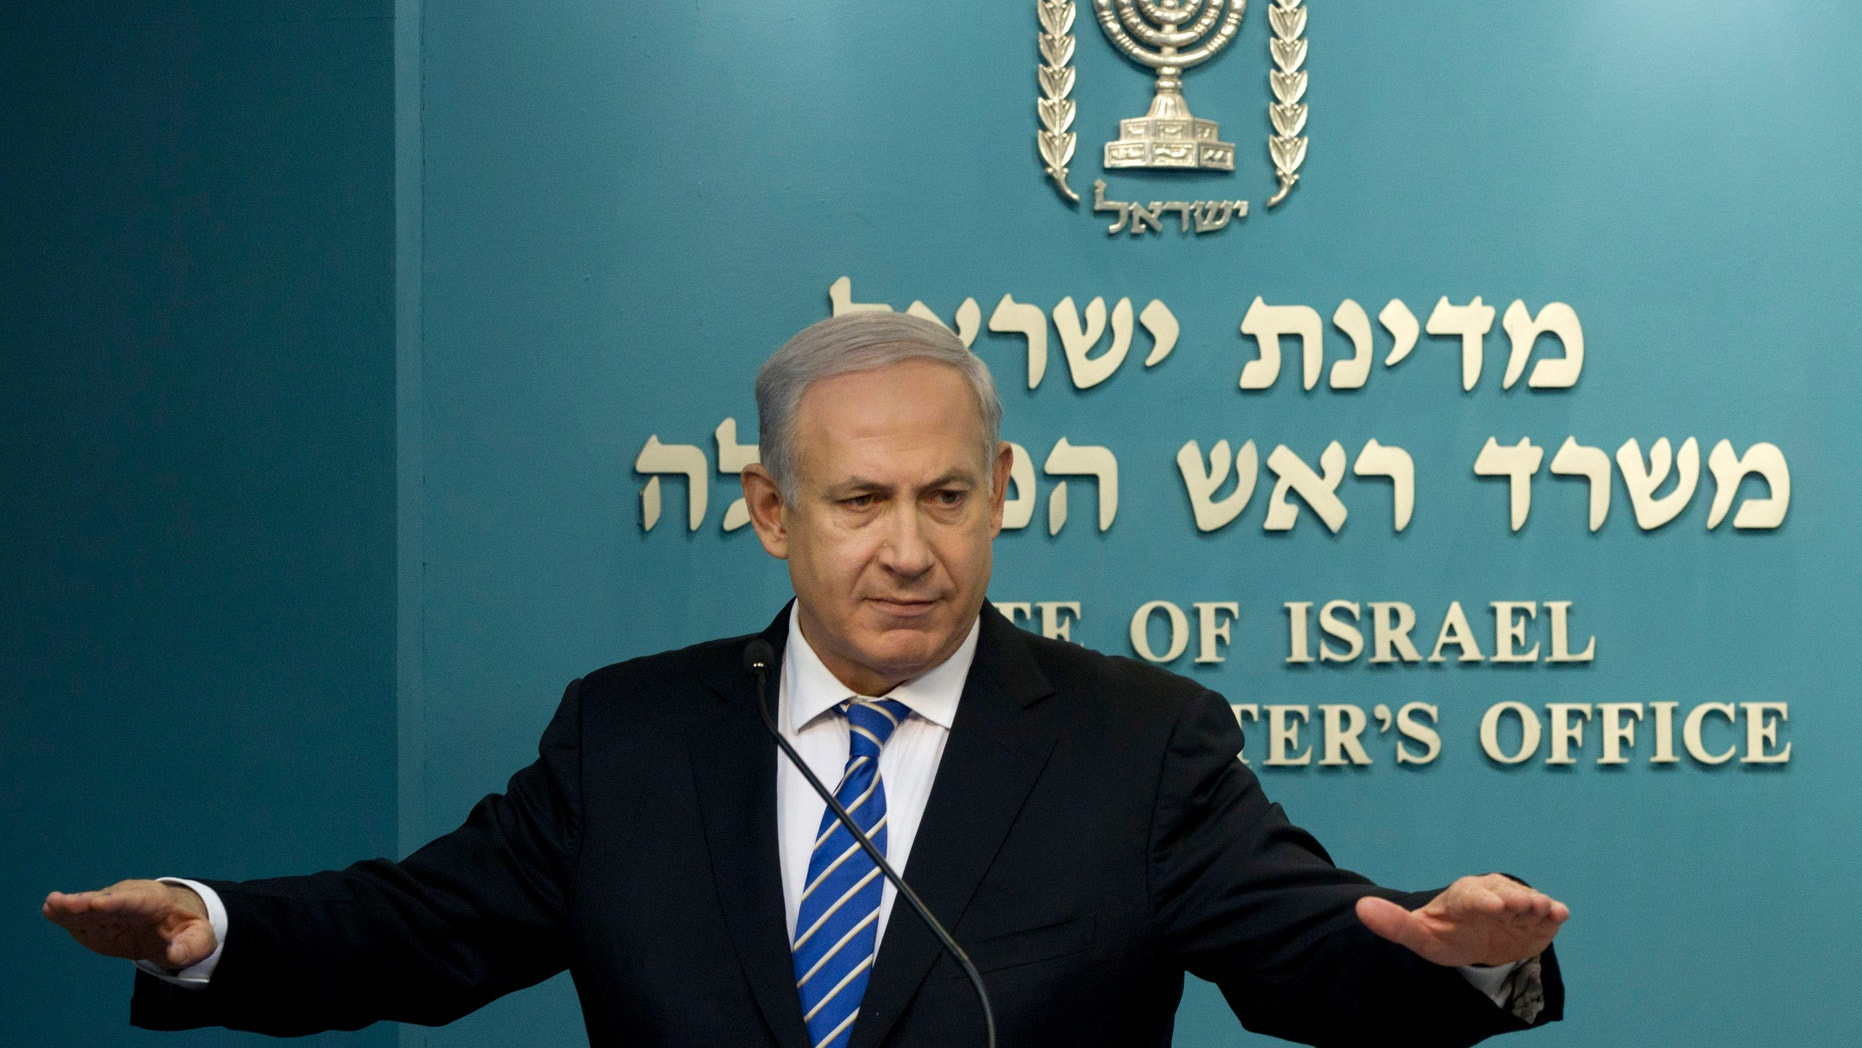 Feb. 22, 2012  - FILE photo, Israeli Prime Minister Benjamin Netanyahu gives a press conference at the Prime Minister's office in Jerusalem.